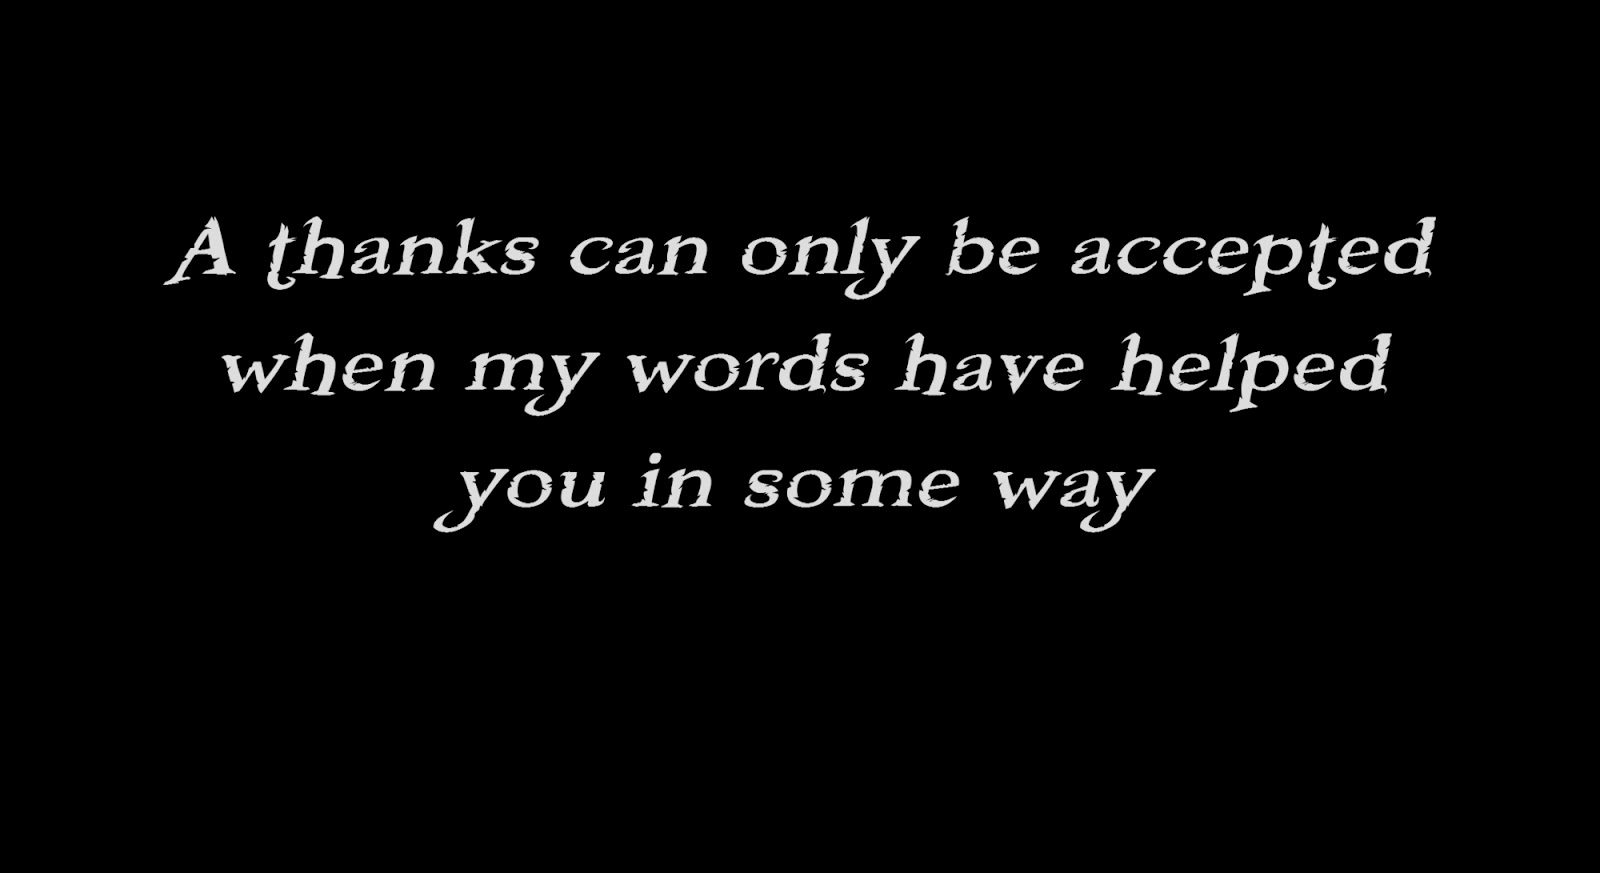 A thanks can only be accepted when my words have helped you in some way